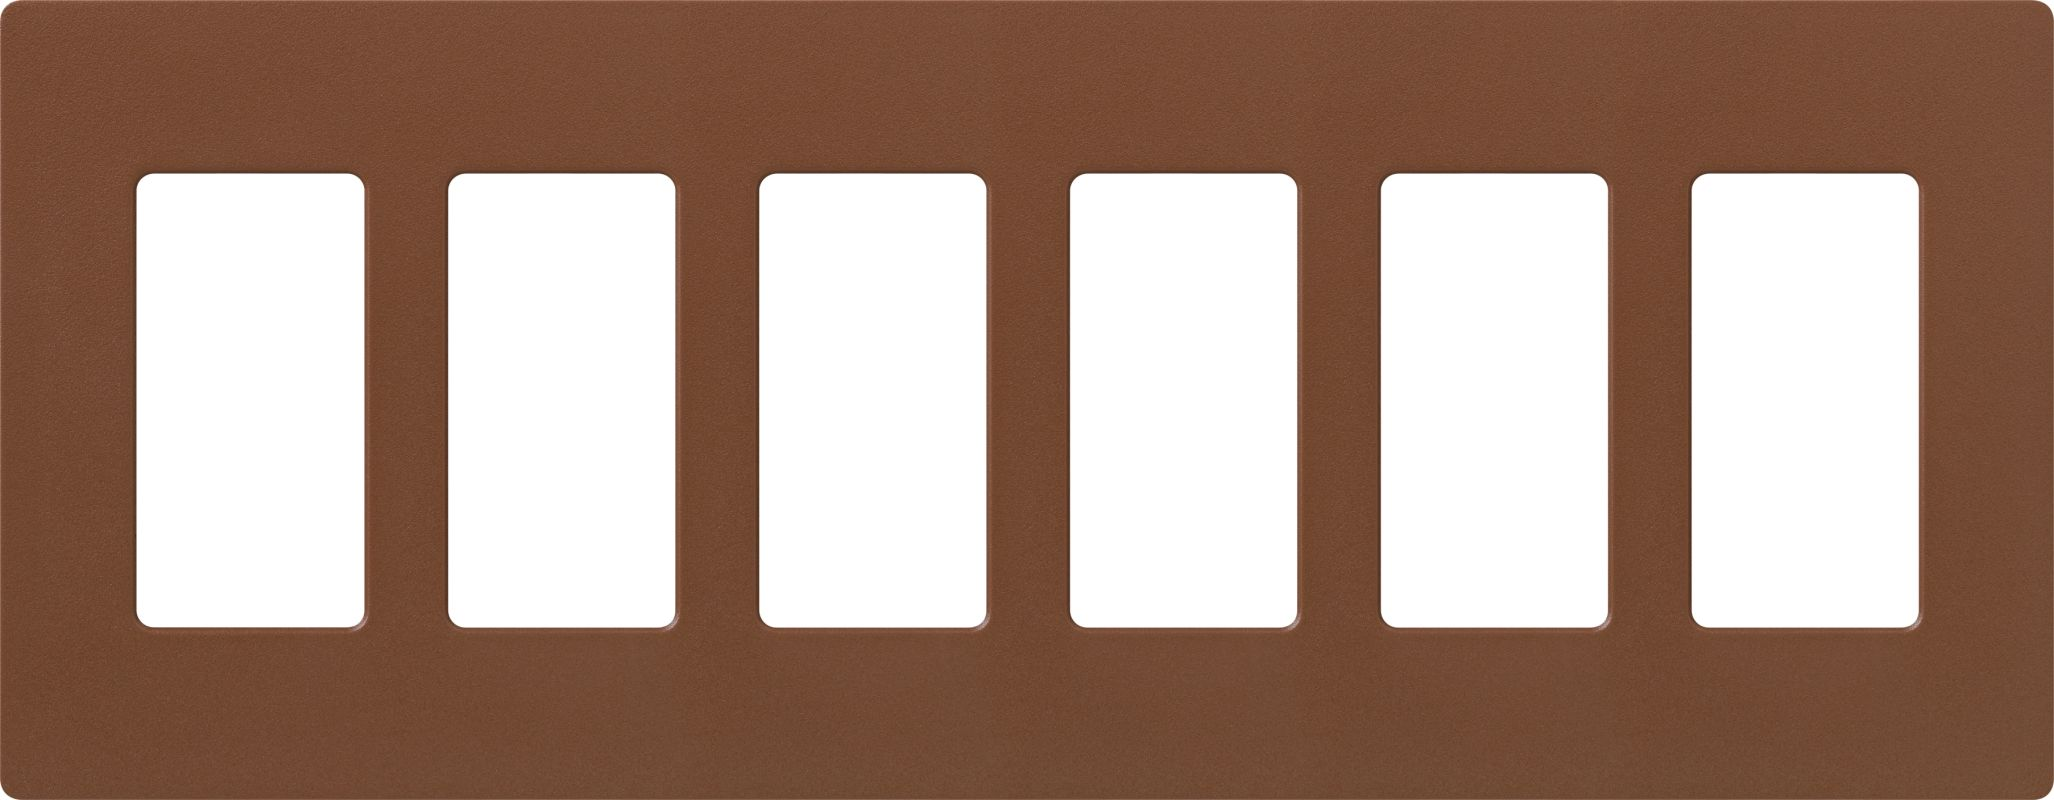 Lutron CW-6 Claro Six Gang Designer Wall Plate Sienna Wall Controls Sale $59.75 ITEM: bci1856044 ID#:SC-6-SI UPC: 27557175838 :